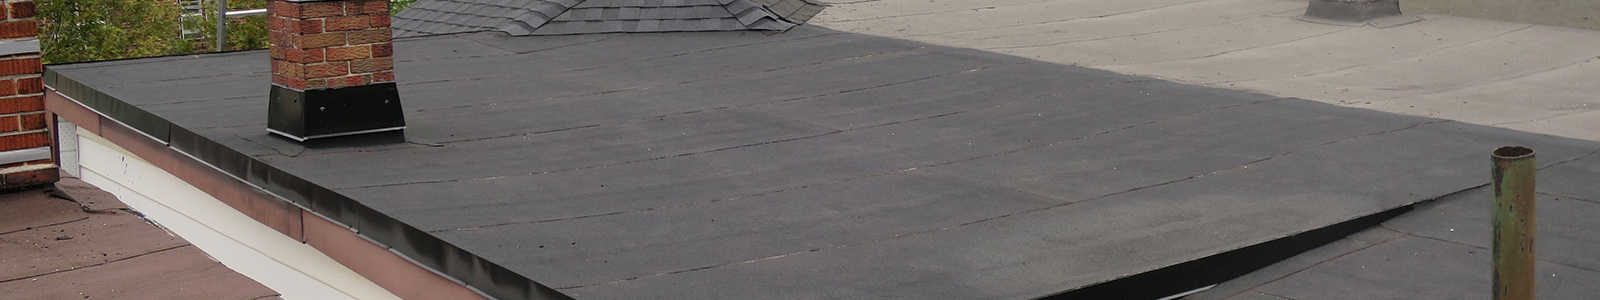 Flat Roof Repair Services In Toronto Amp The Gta Quality